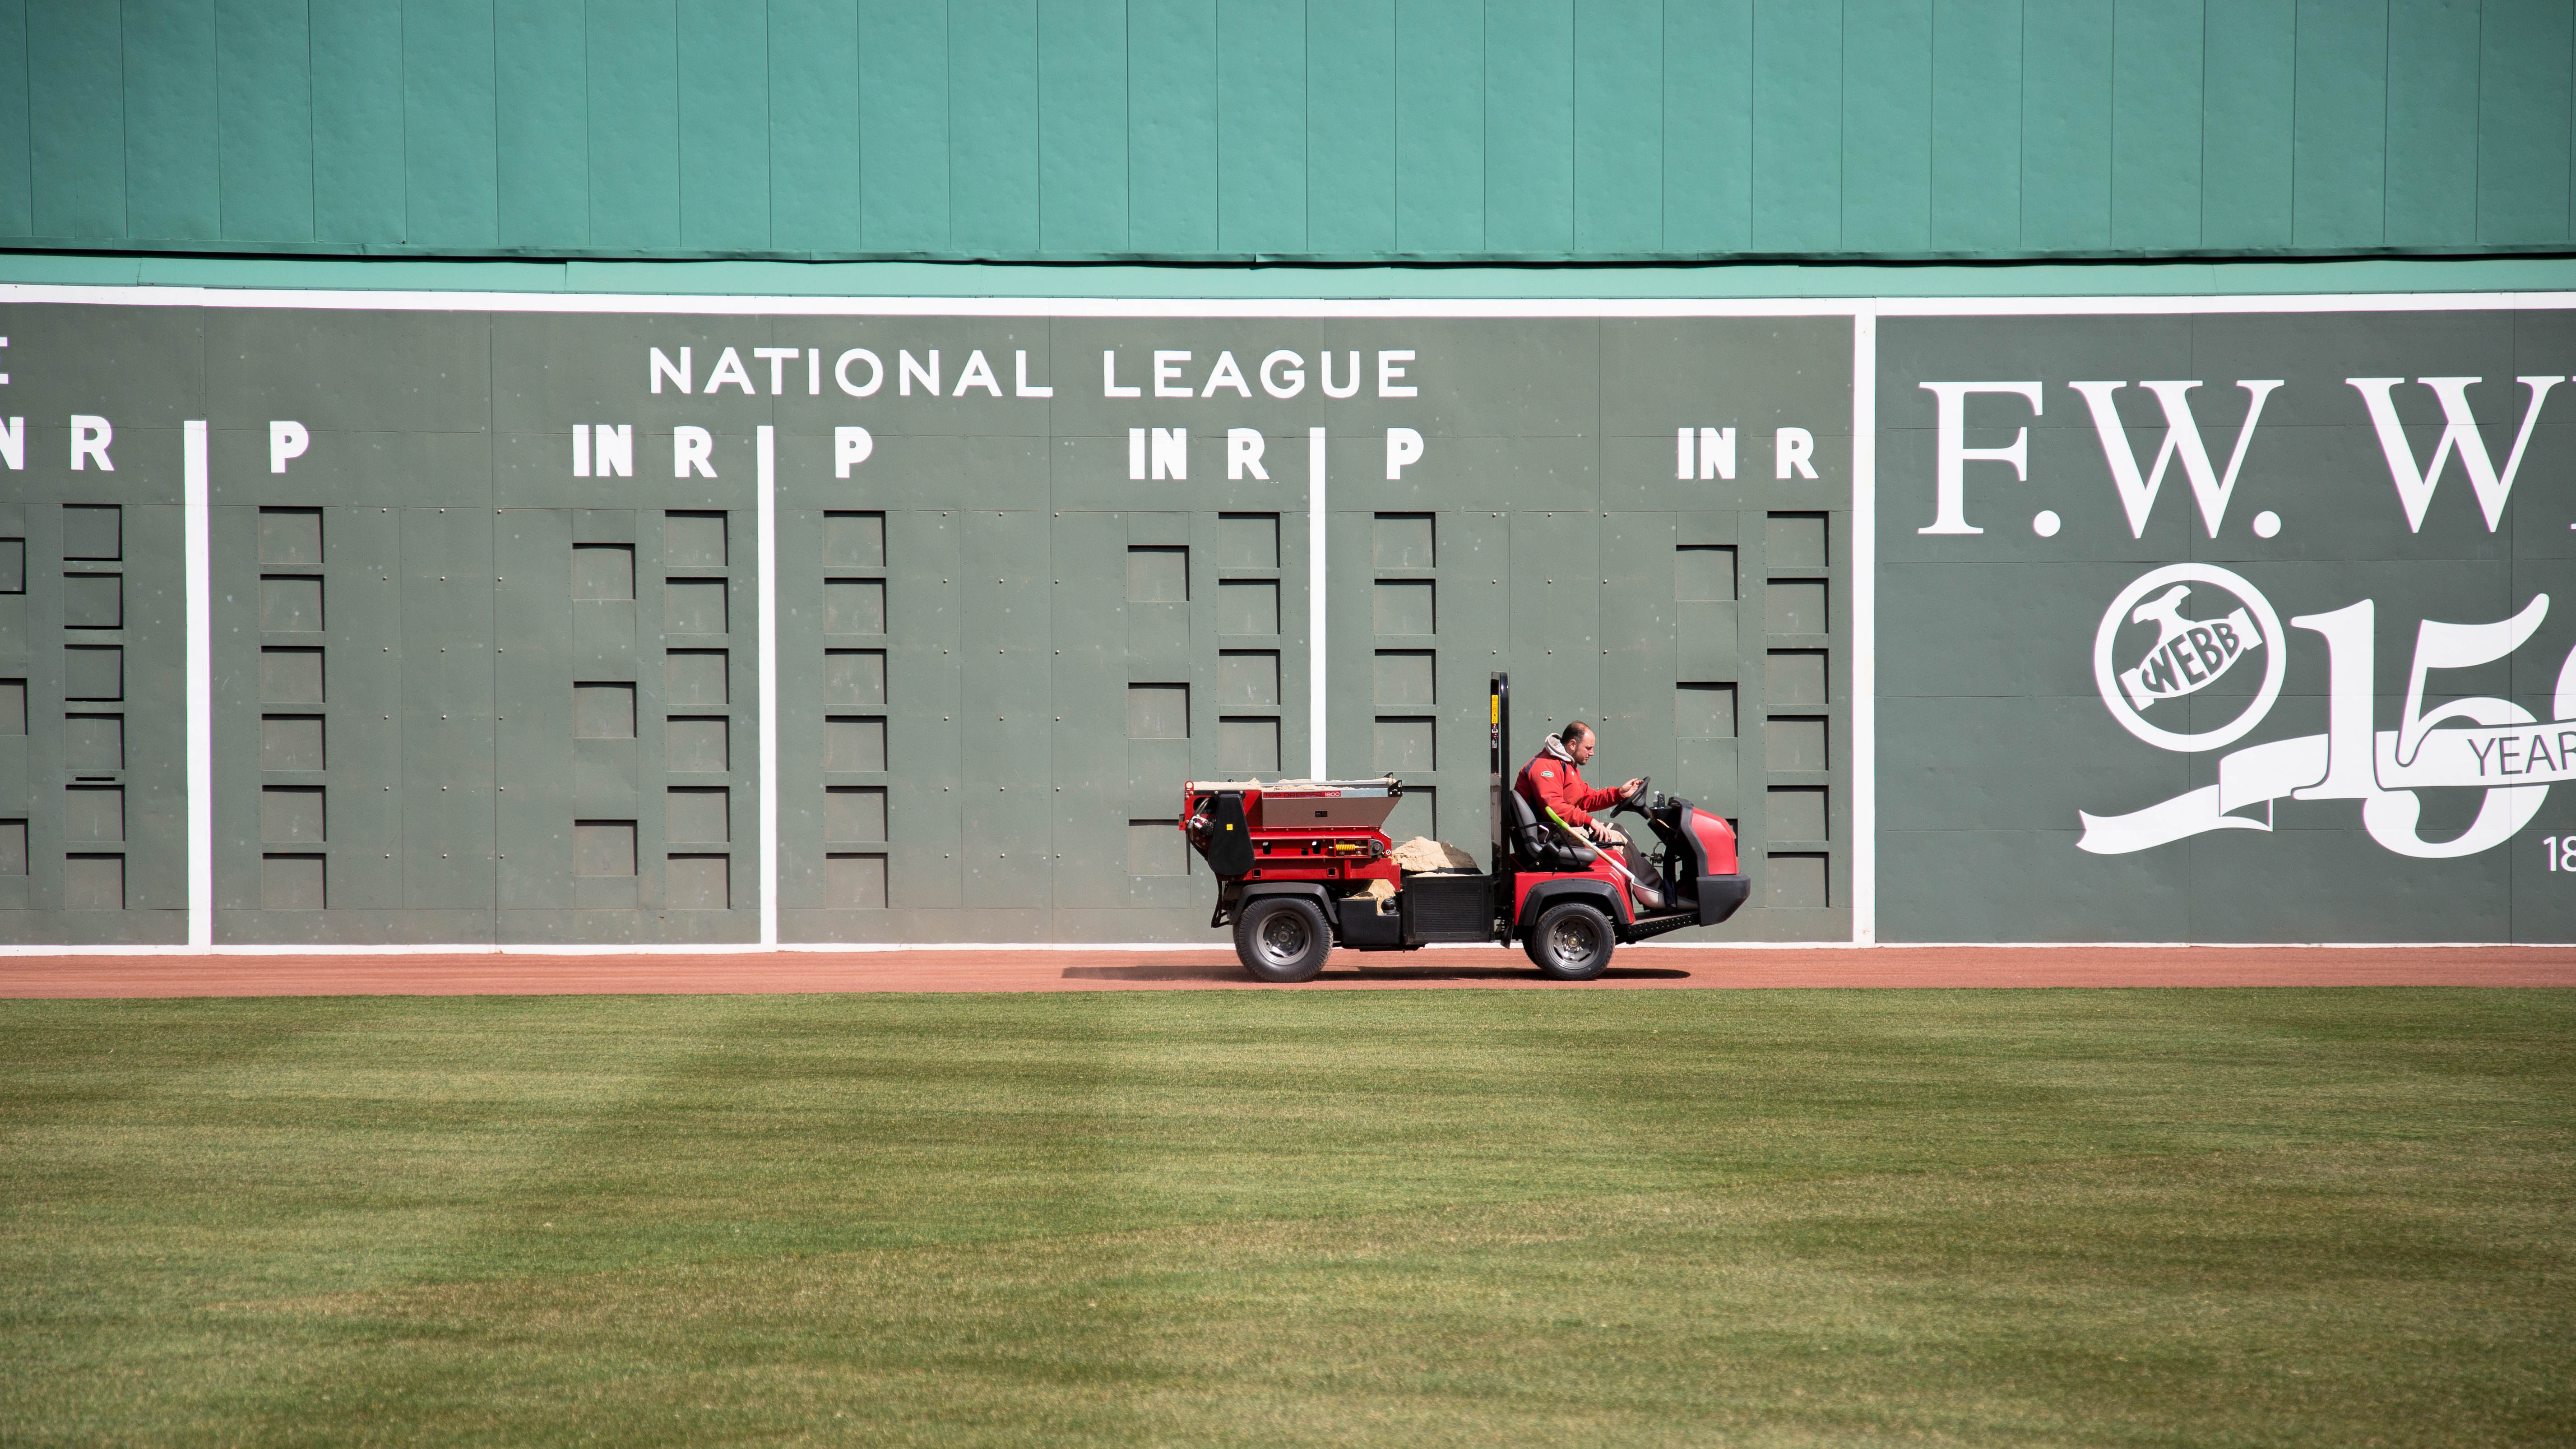 No scores, no standings -- not yet -- on Fenway's Green Monster as an employee drives past on the last day of March.